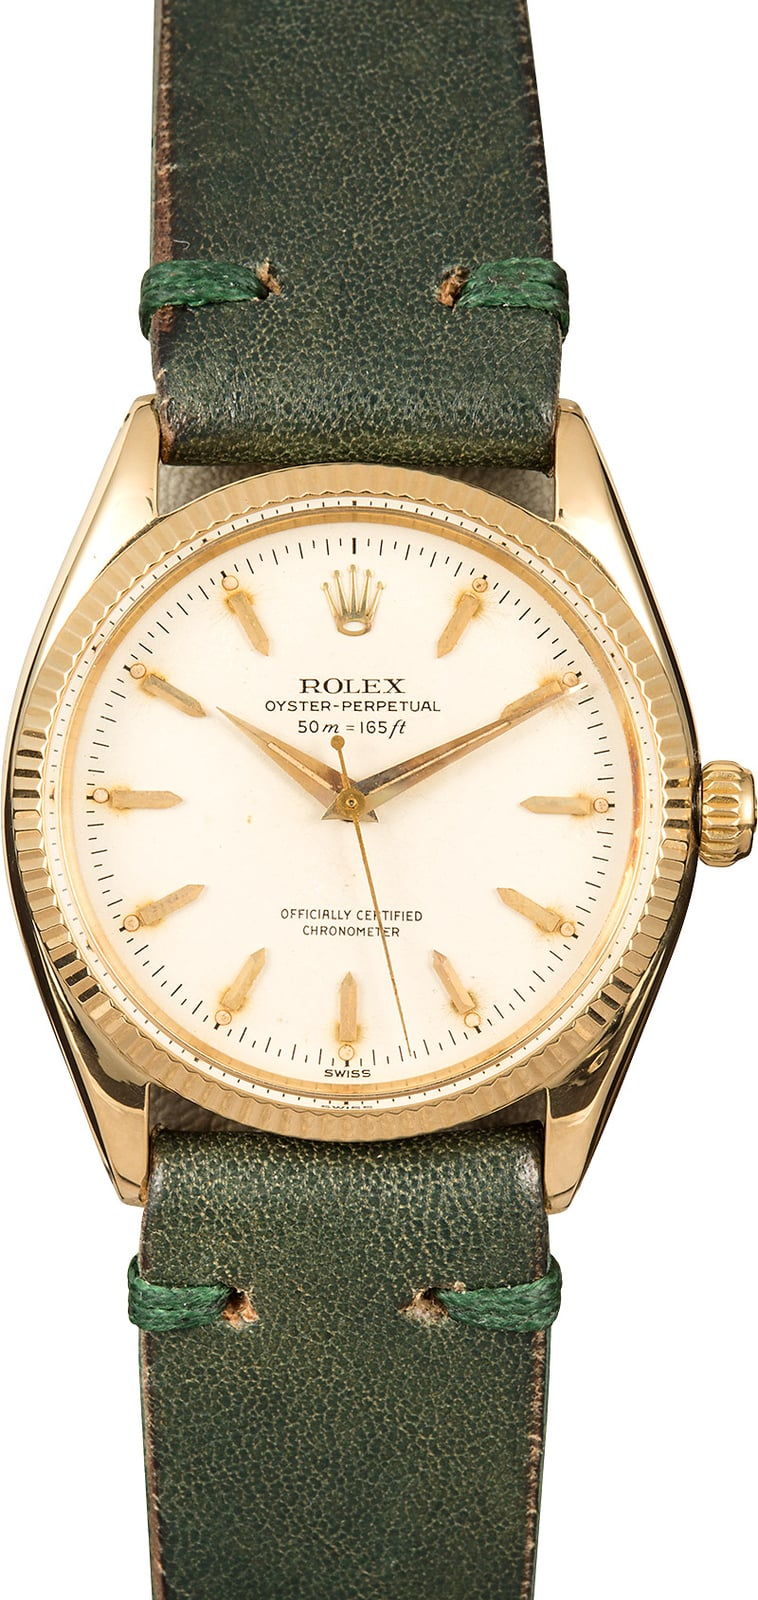 Rolex vintage oyster perpetual 6567 for Vintage rolex oyster